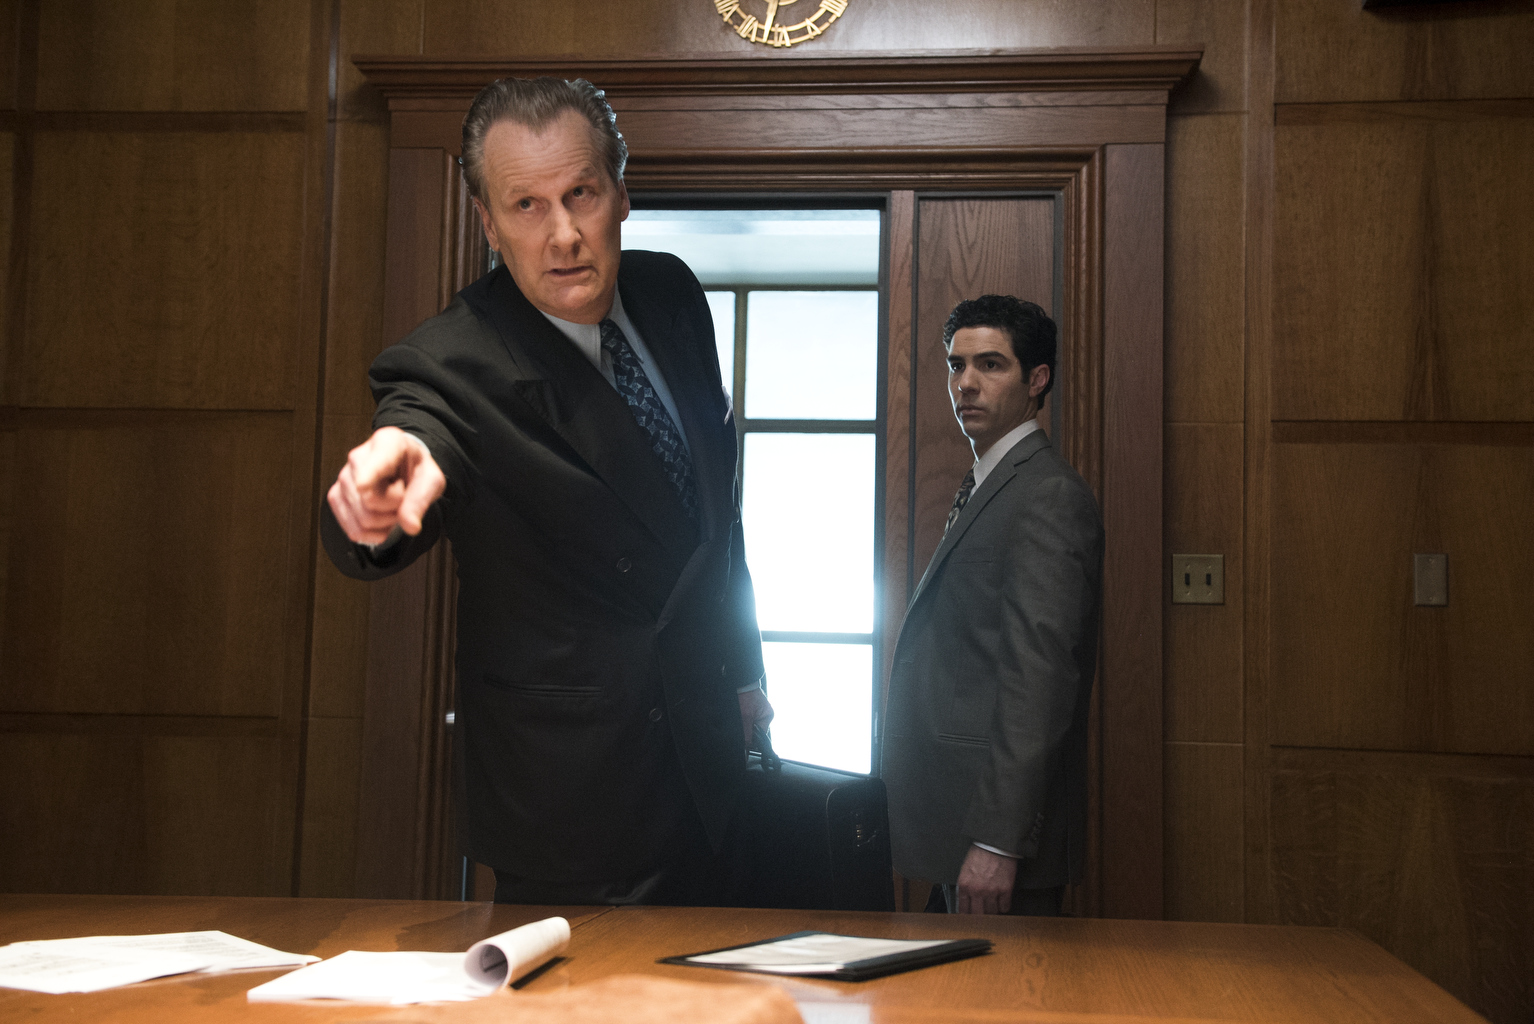 """THE LOOMING TOWER -- """"Losing My Religion"""" - Episode 102 - Following the simultaneous embassy bombings in Kenya and Tanzania, the FBI begins its investigation on the ground while the CIA starts working on a retaliation plan. John O'Neill (Jeff Daniels) and Ali Soufan (Tahar Rahim), shown. (Photo by: JoJo Whilden/Hulu)"""